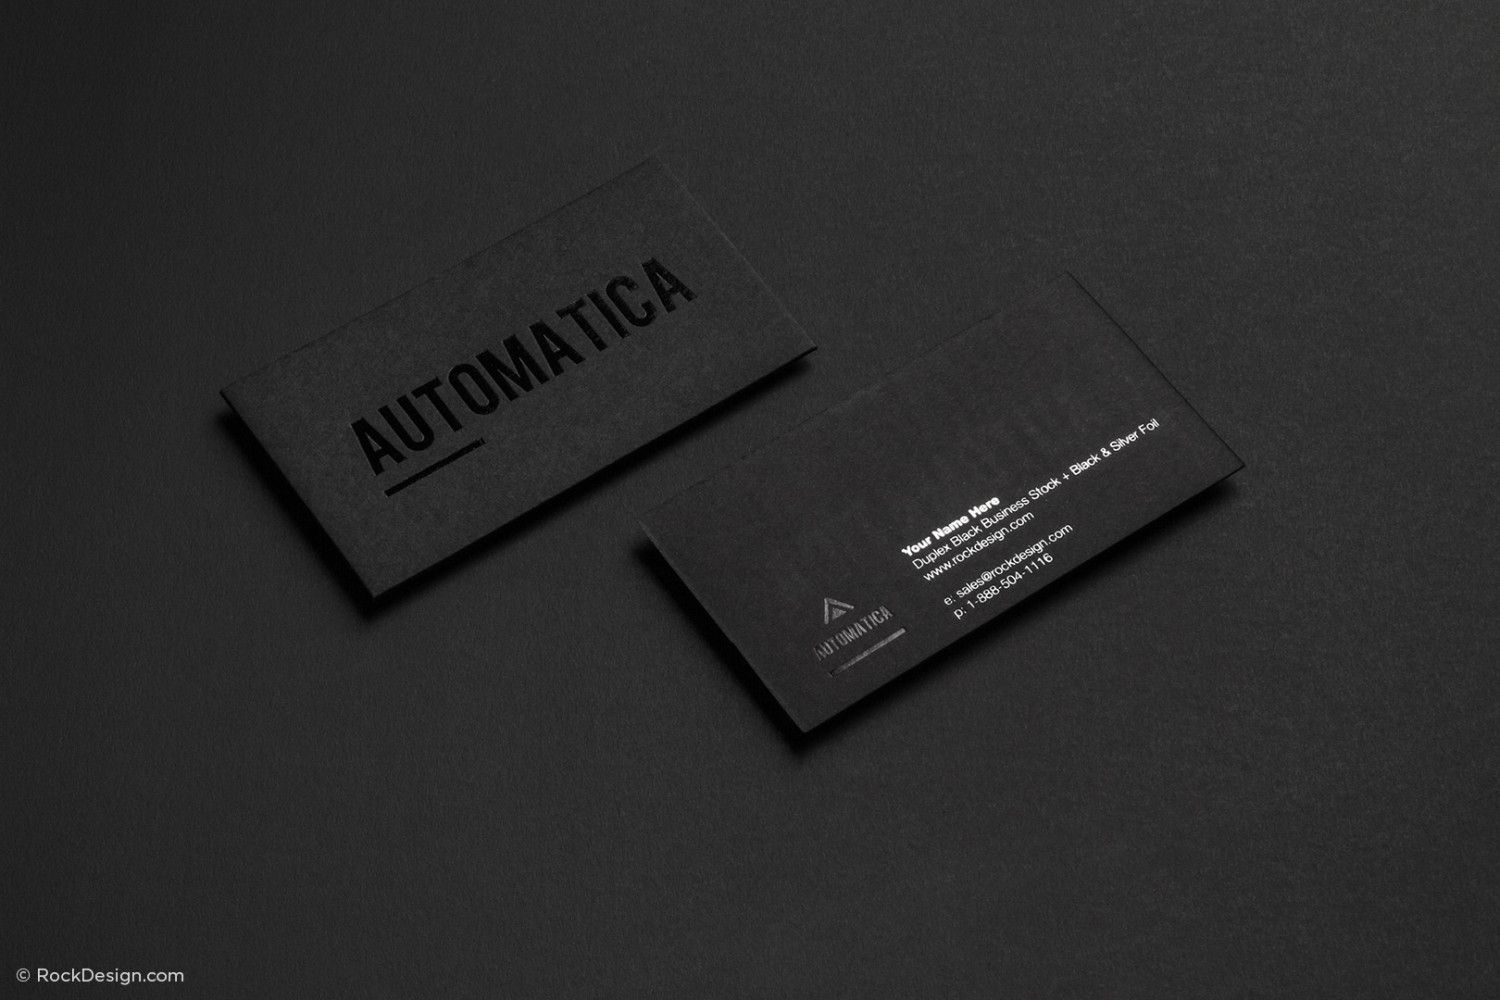 Free High End Black Business Card Template Rockdesign Com Black Business Card Printing Business Cards Business Card Design Minimalist